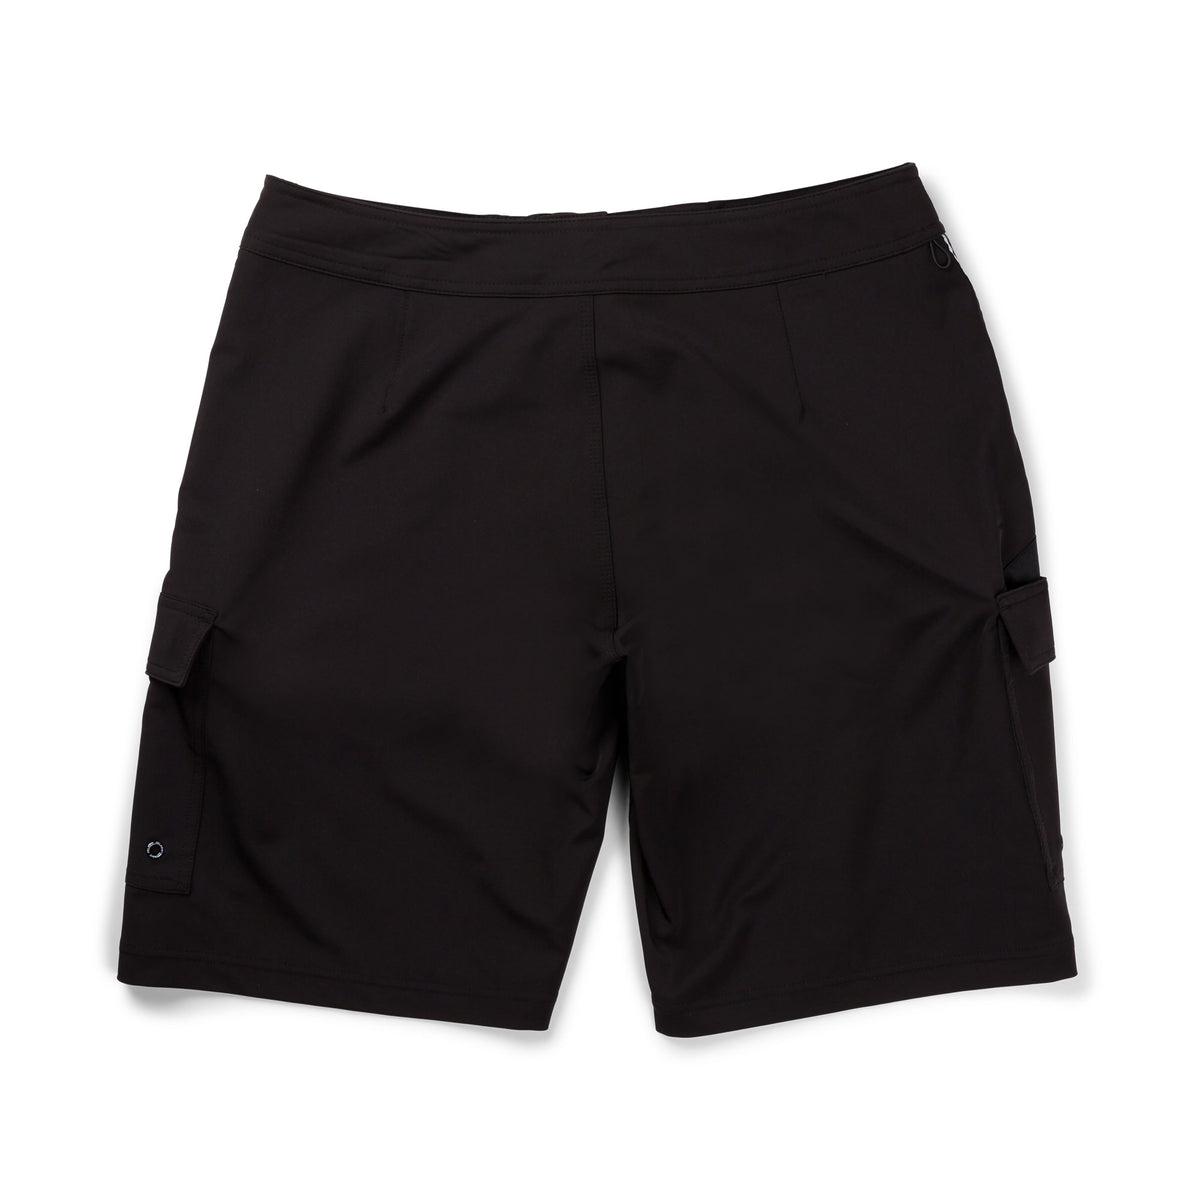 Blackfin Stretch Fishing Shorts Big Image - 2